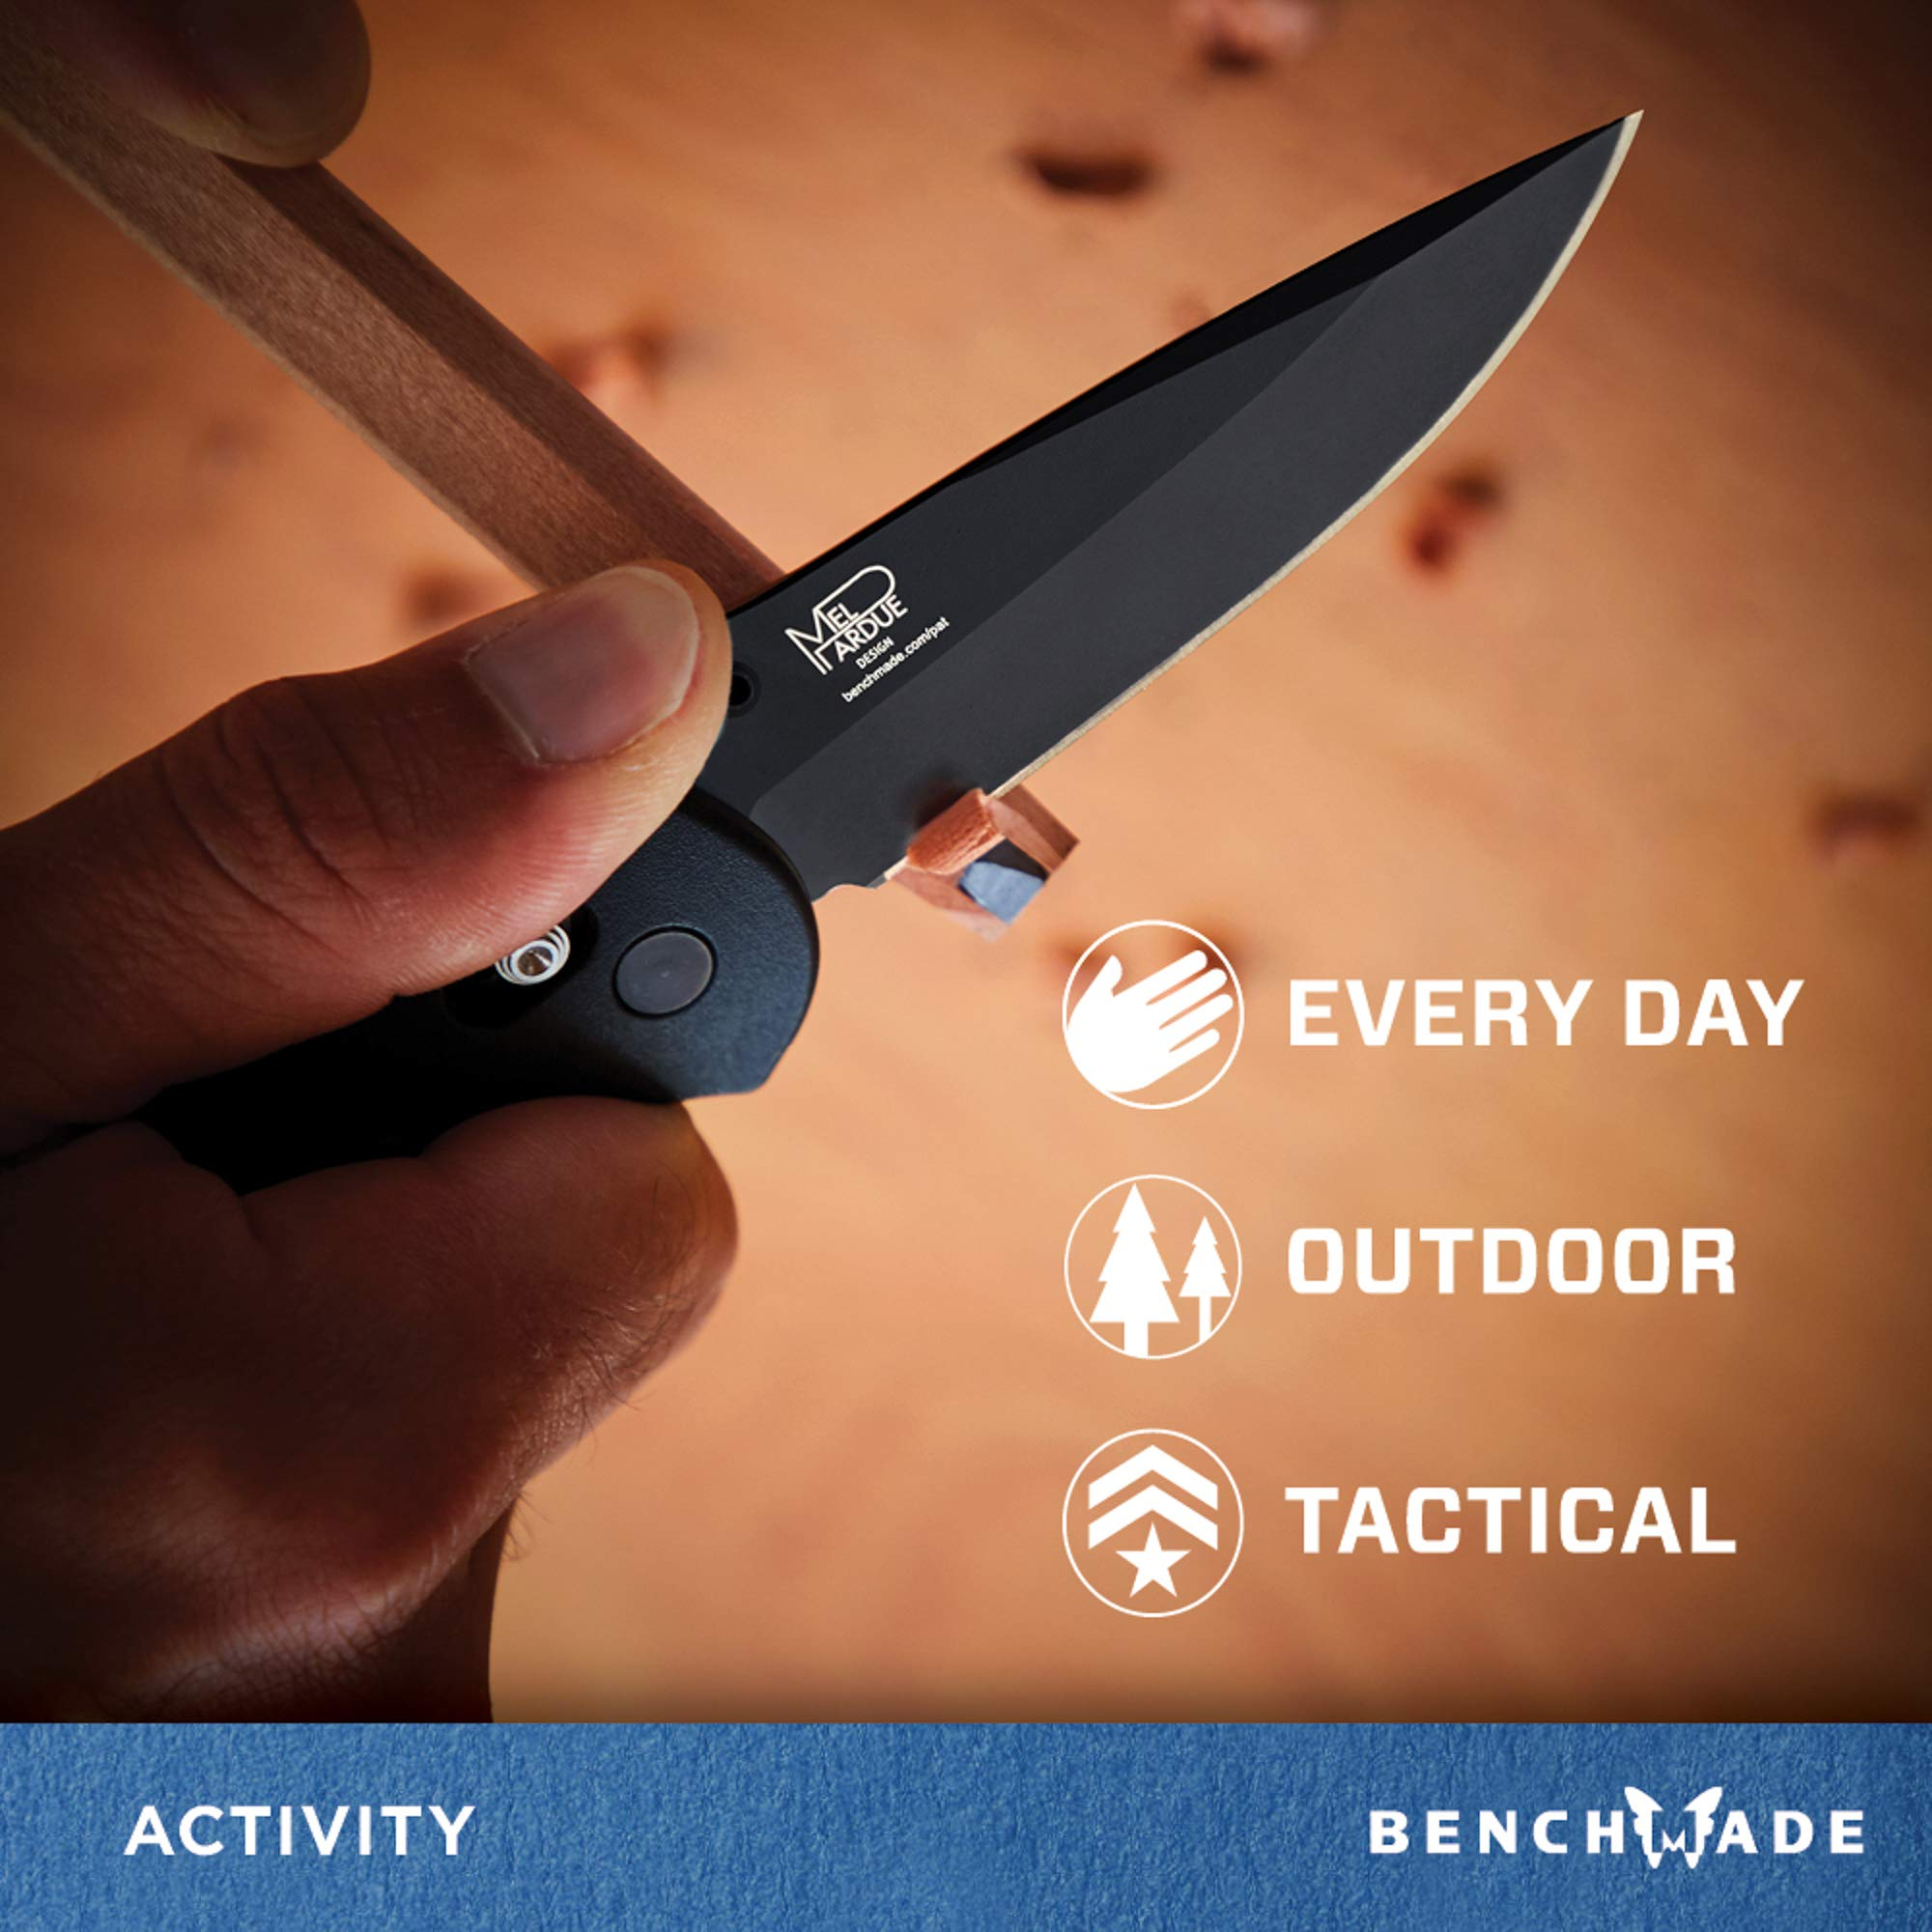 Benchmade - Griptilian 551 Knife with CPM-S30V Steel, Drop-Point Blade, Plain Edge, Coated Finish, Black Handle by Benchmade (Image #4)